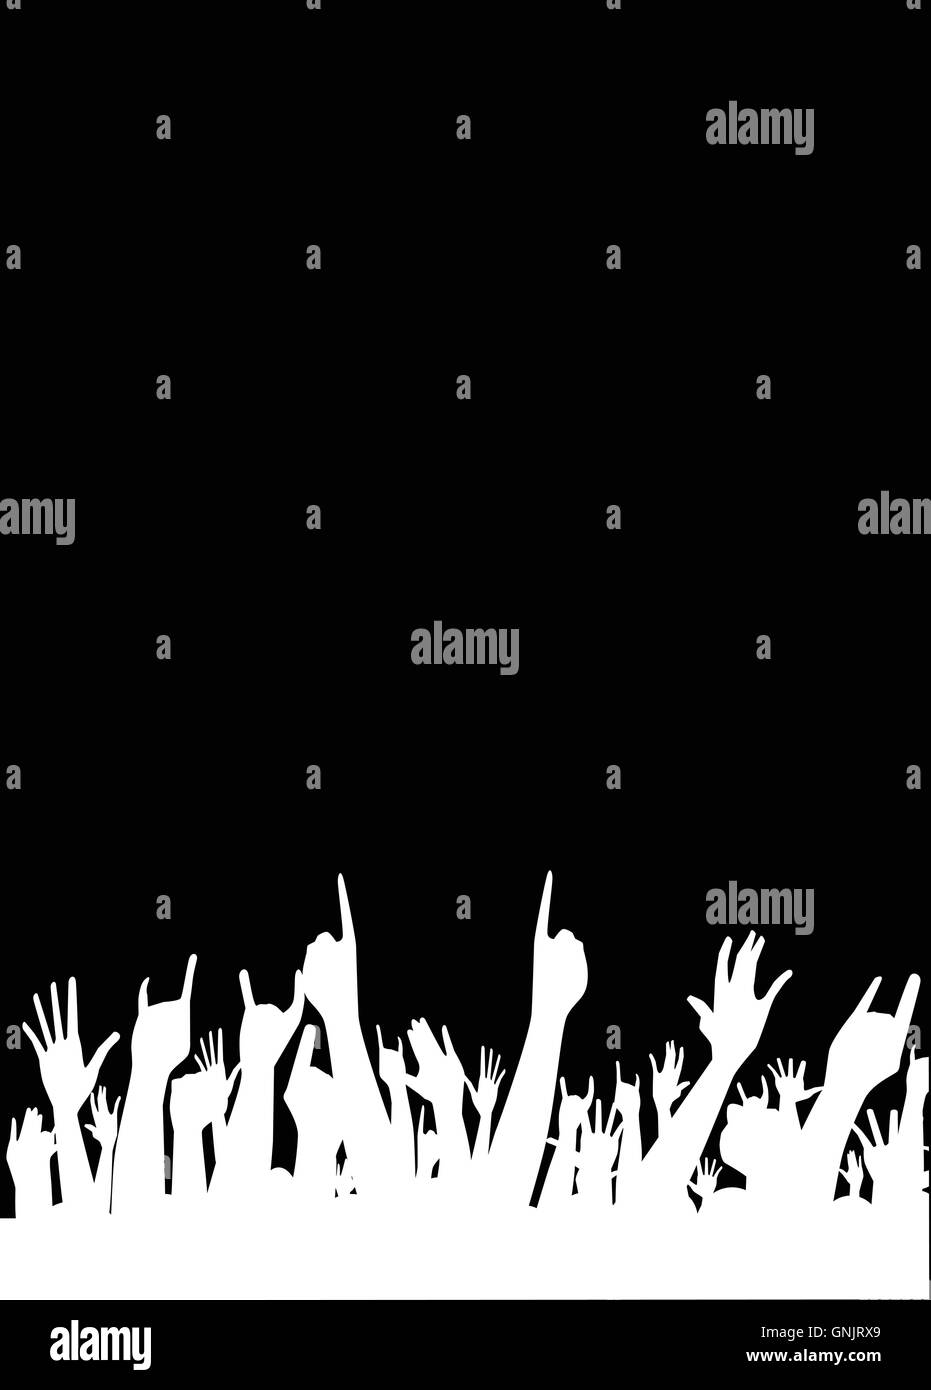 Audience Poster Background - Stock Vector